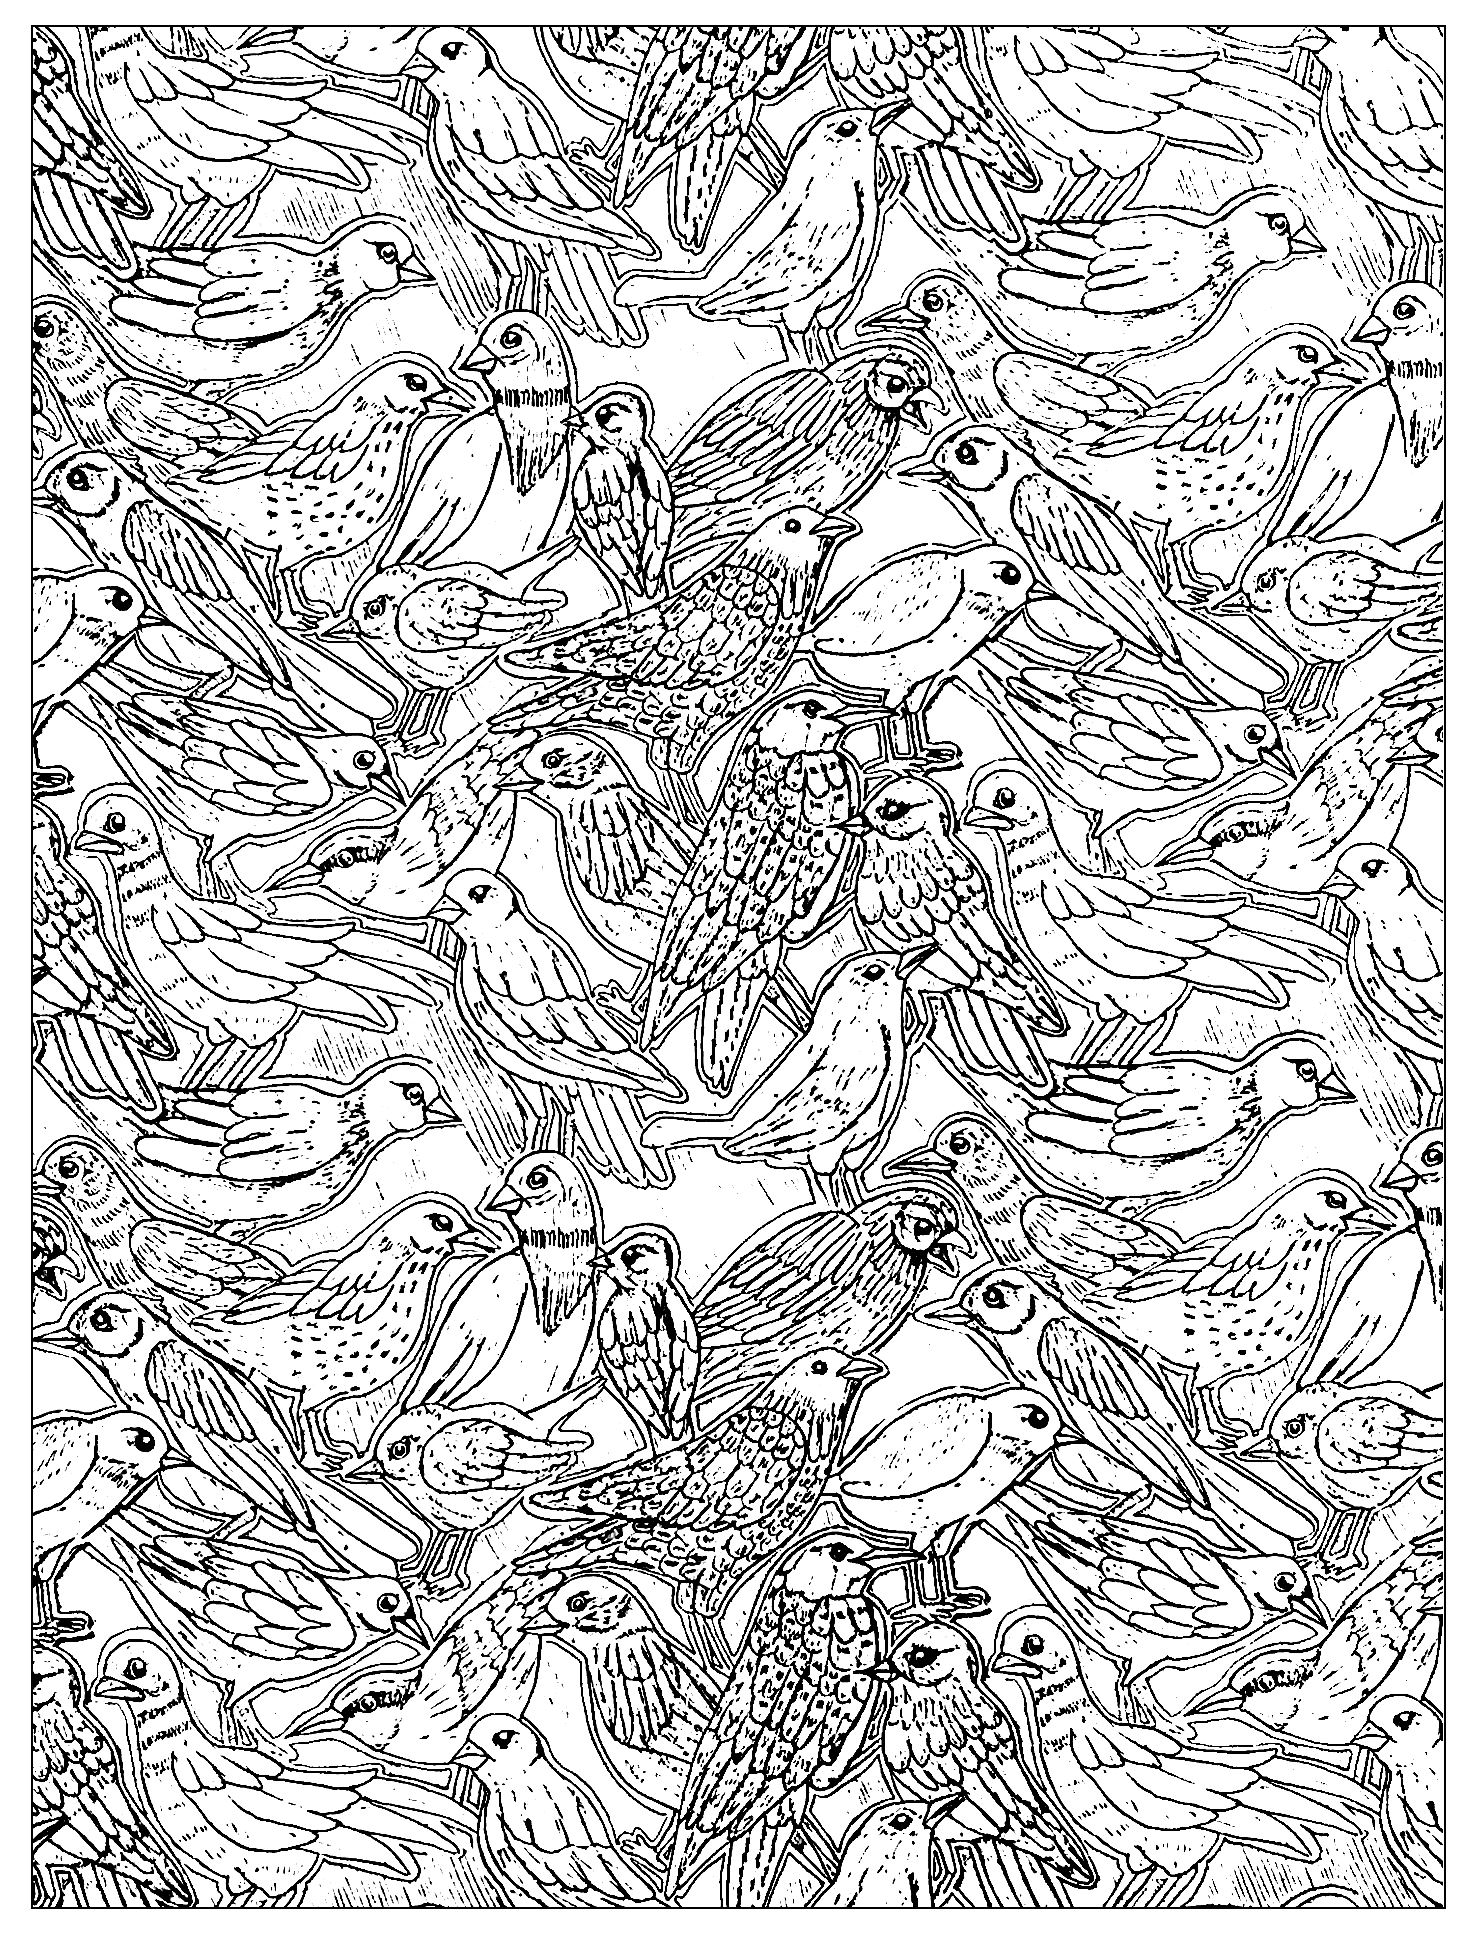 adult coloring pages birds - birds 2 animals coloring pages for adults justcolor